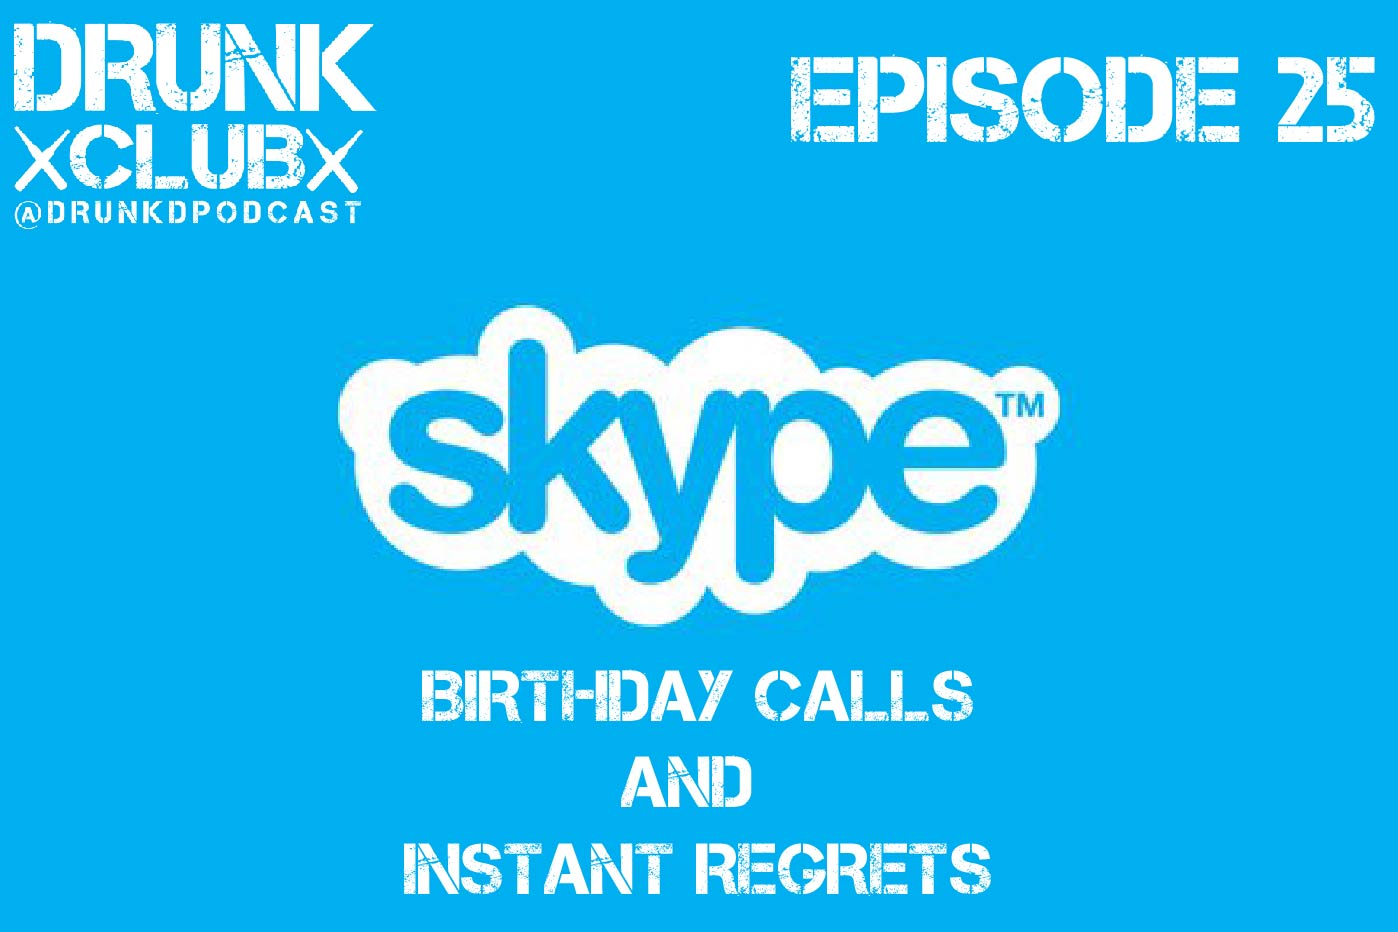 Birthday Calls and Instant Regrets